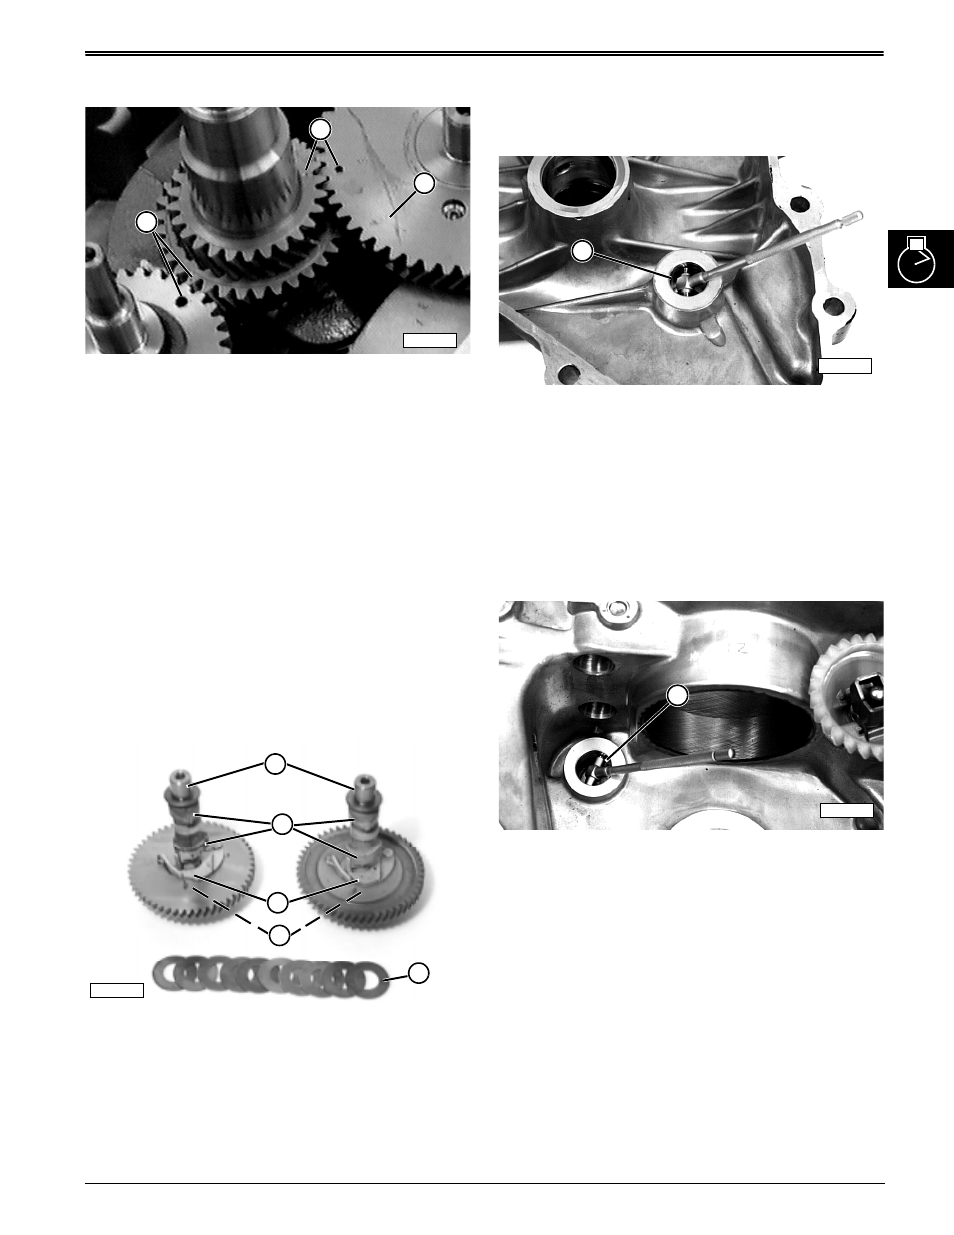 Remove And Install Camshaft  Inspect Camshaft  Repair